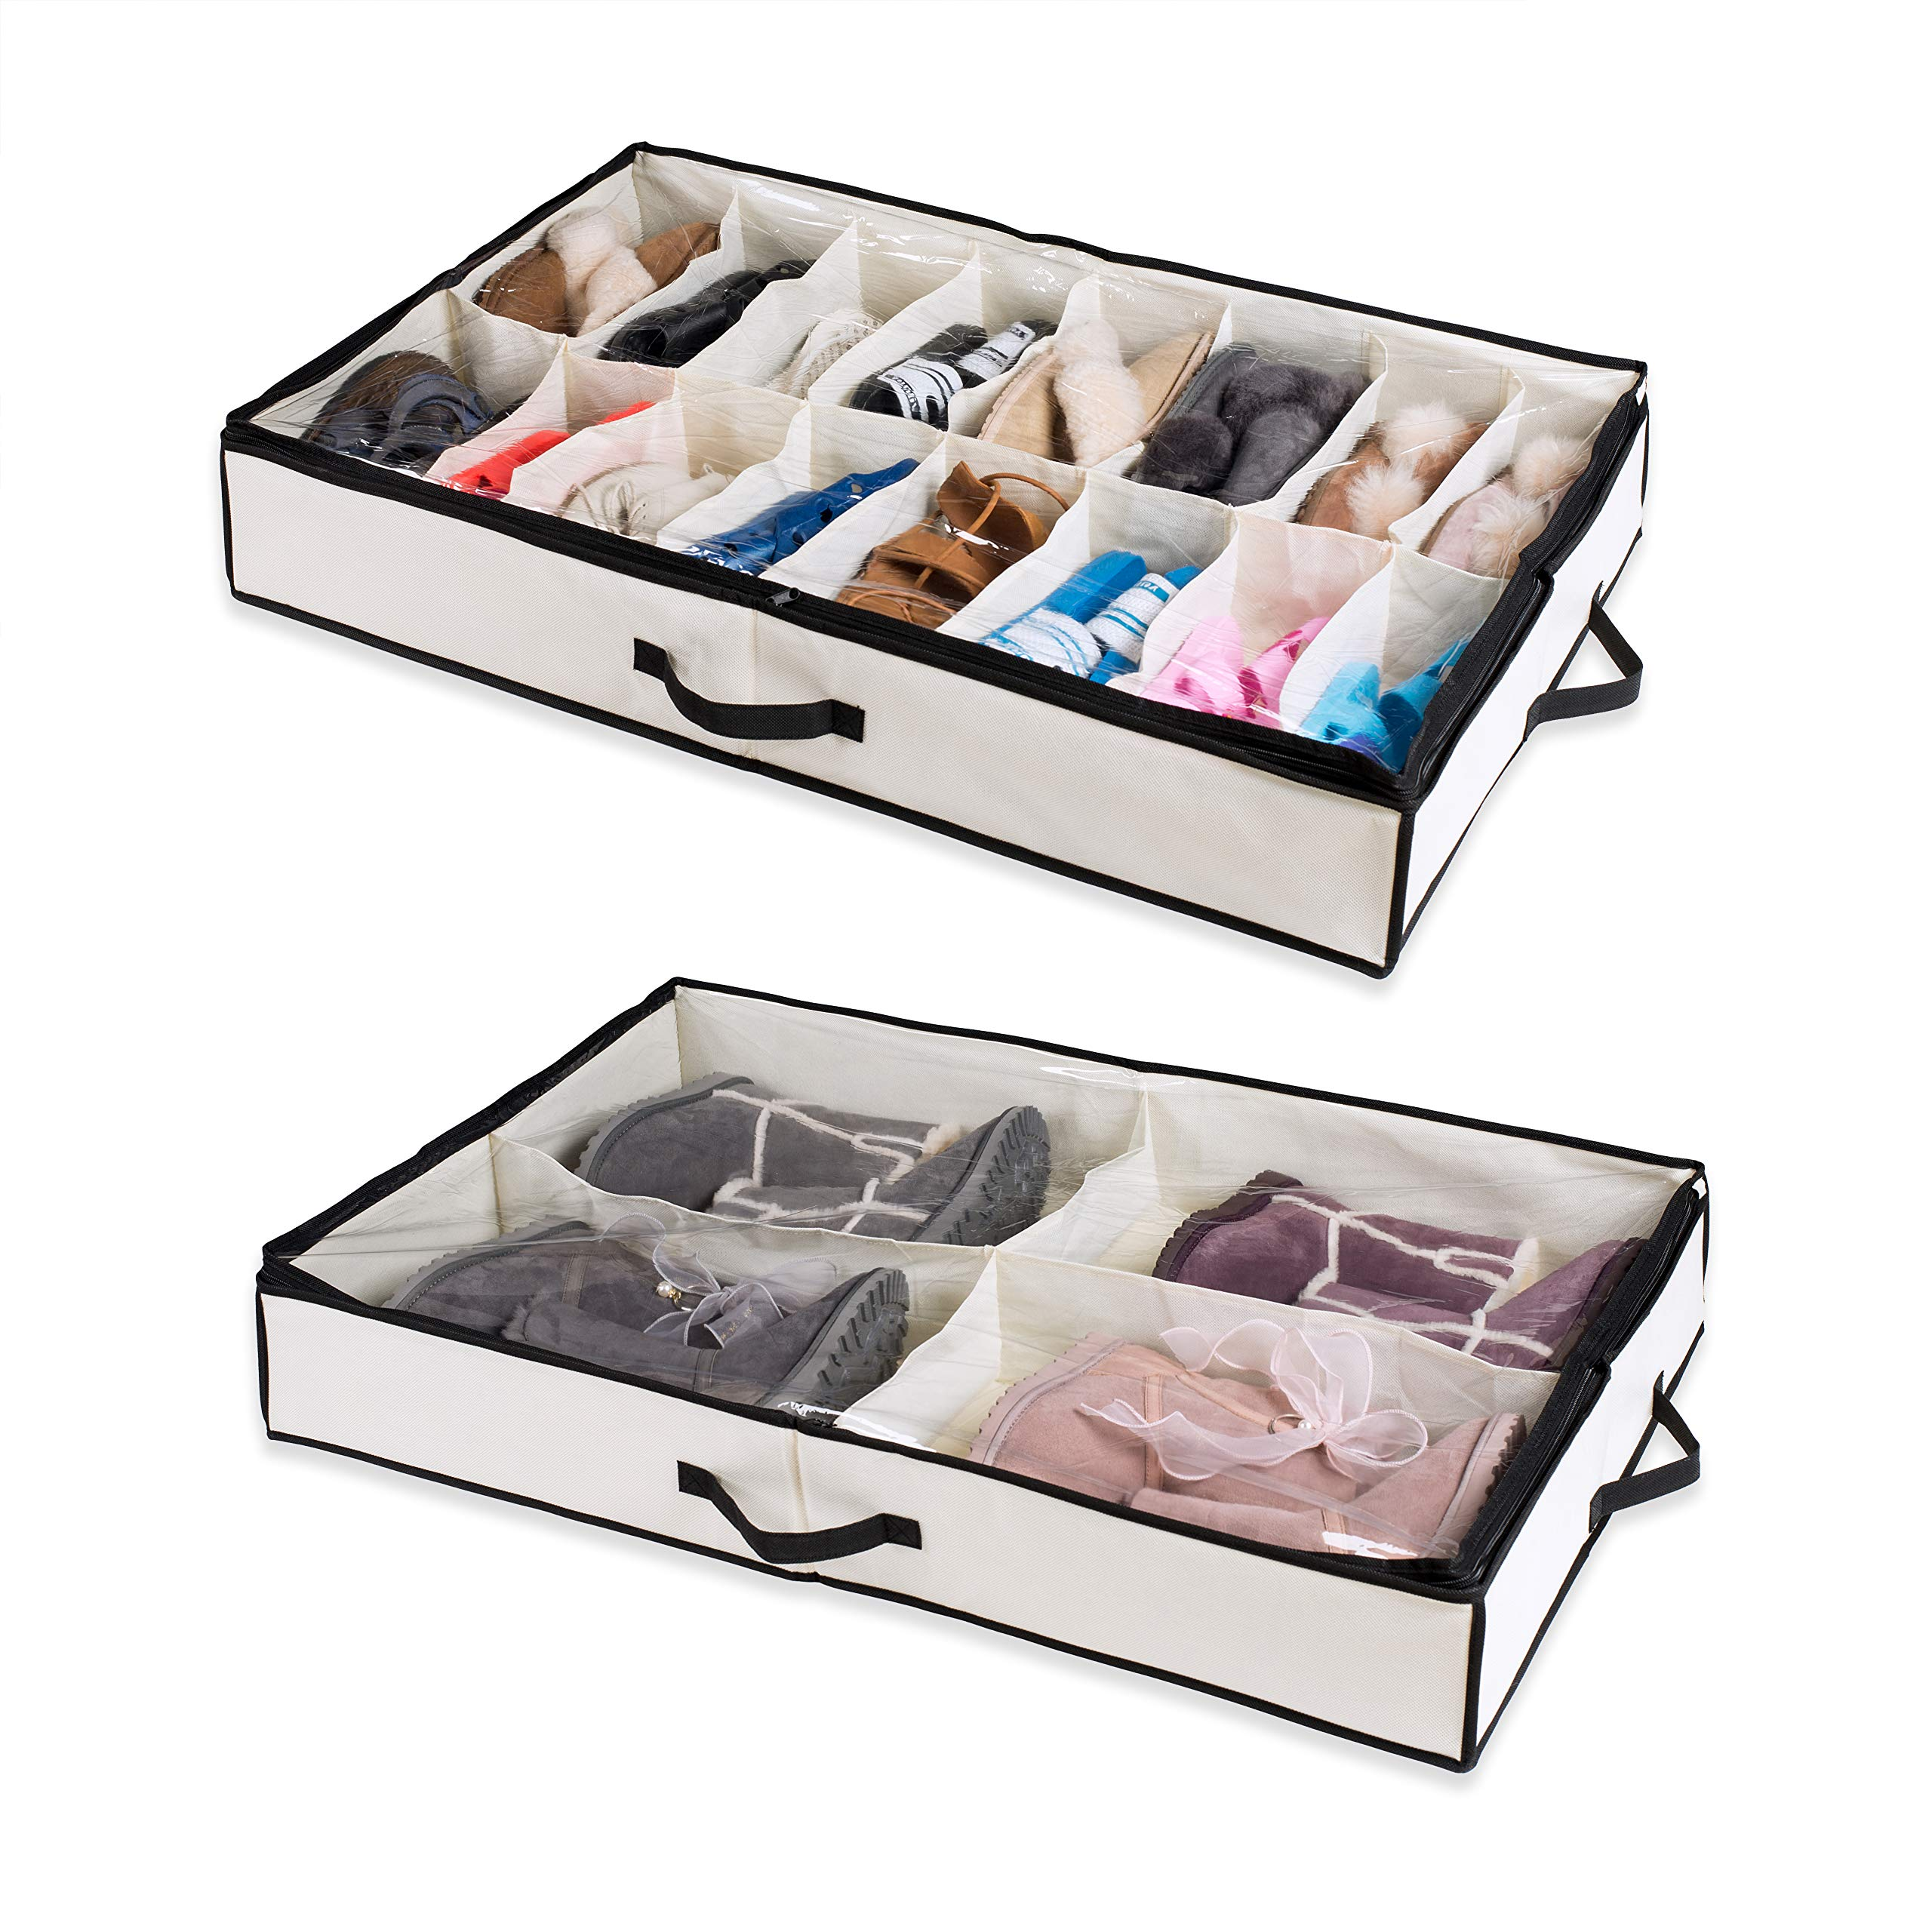 Woffit Under The Bed Shoe Organizer Fits 16 Pairs + 4 Pairs Boots - Sturdy & Breathable Materials - Underbed Storage Solution for Kids Men & Women Shoes - Great Space Saver for Your Closet! by Woffit